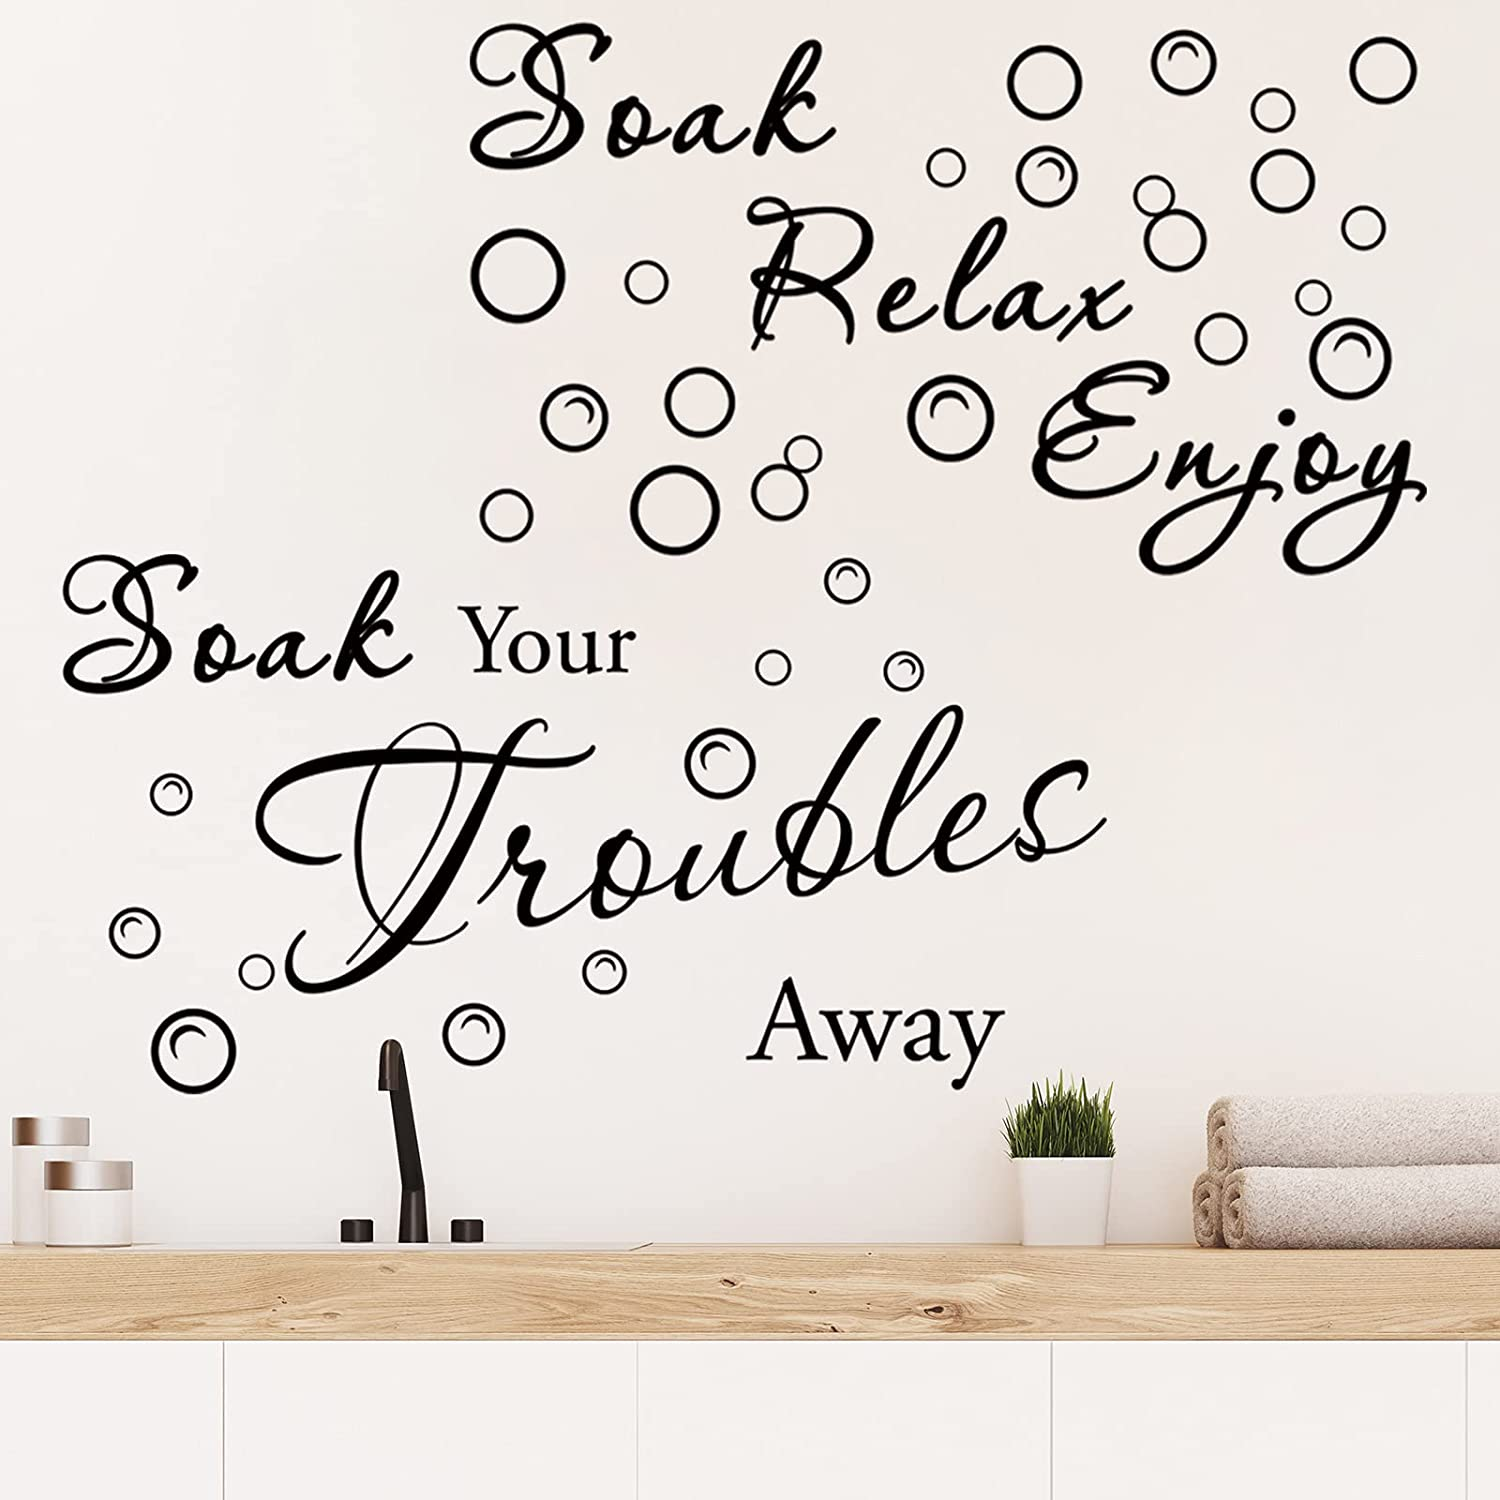 2 Pieces Bathroom Wall Decals Stickers Soak Relax Bathroom Decor Removable Vinyl Wall Sticker Soak Your Troubles Away Stickers Quote Wall Art Decoration for Home Bathroom